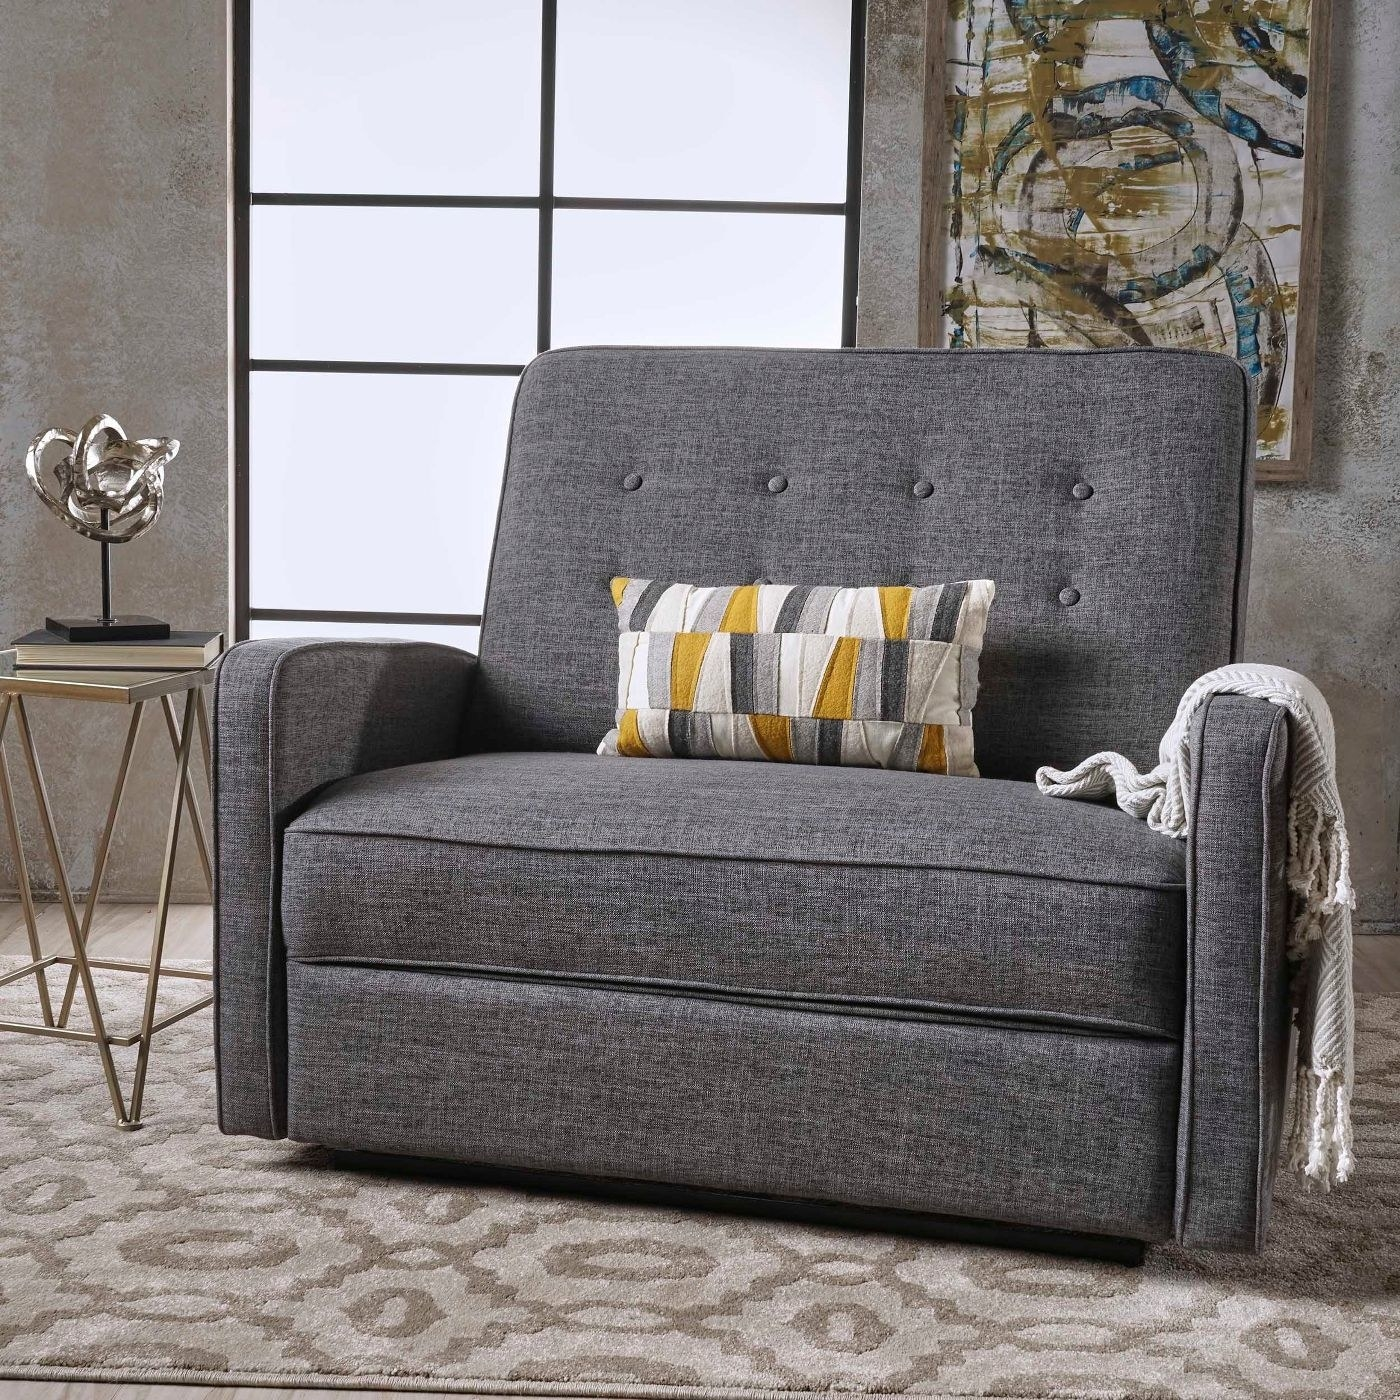 Gray reclining loveseat with a yellow and gray-patterned pillow and a white throw blanket